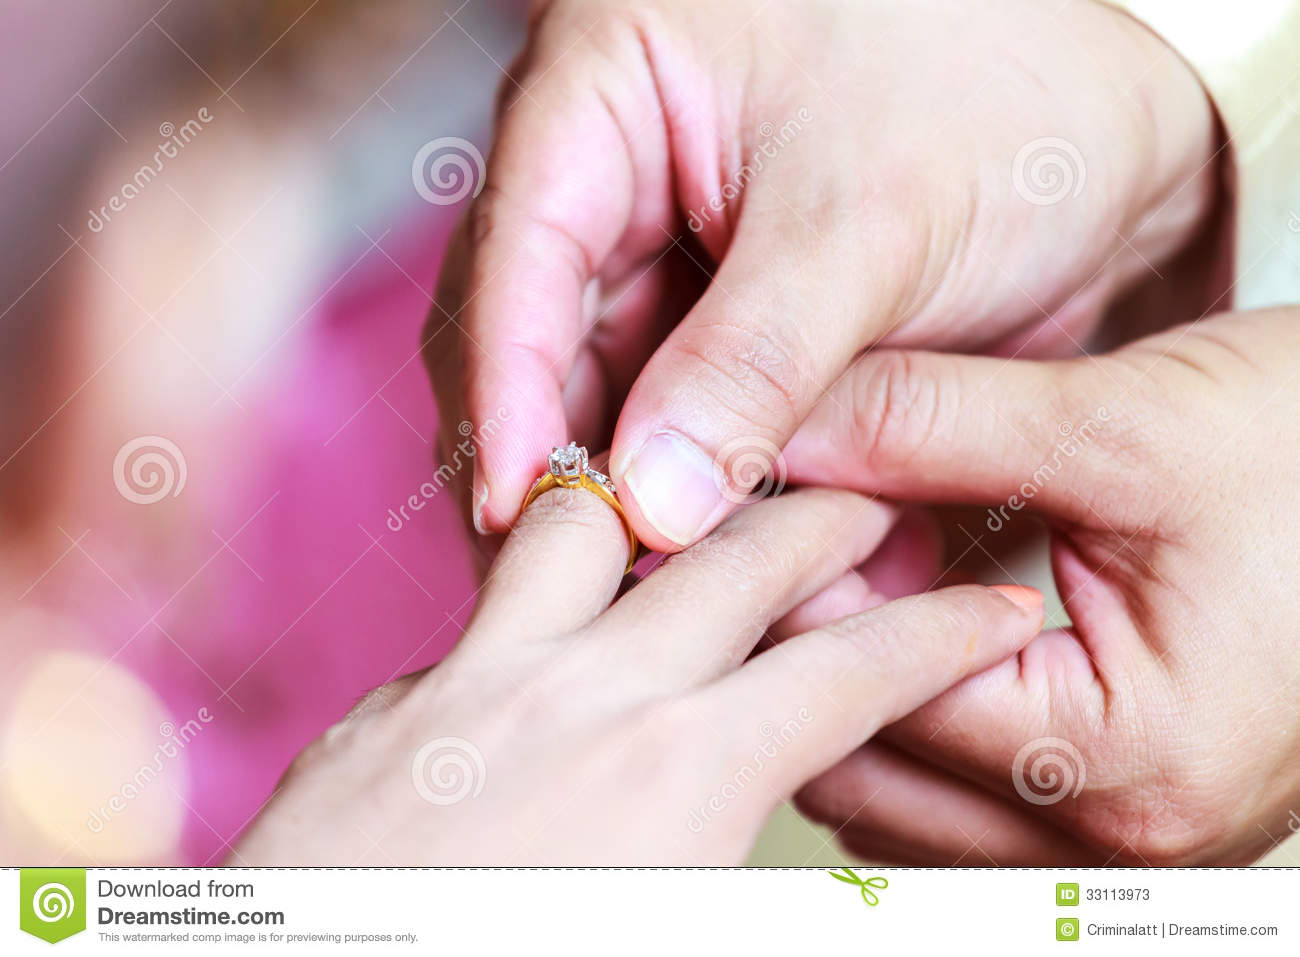 Groom Wearing Ring On Bride\'s Finger Stock Image - Image of ...